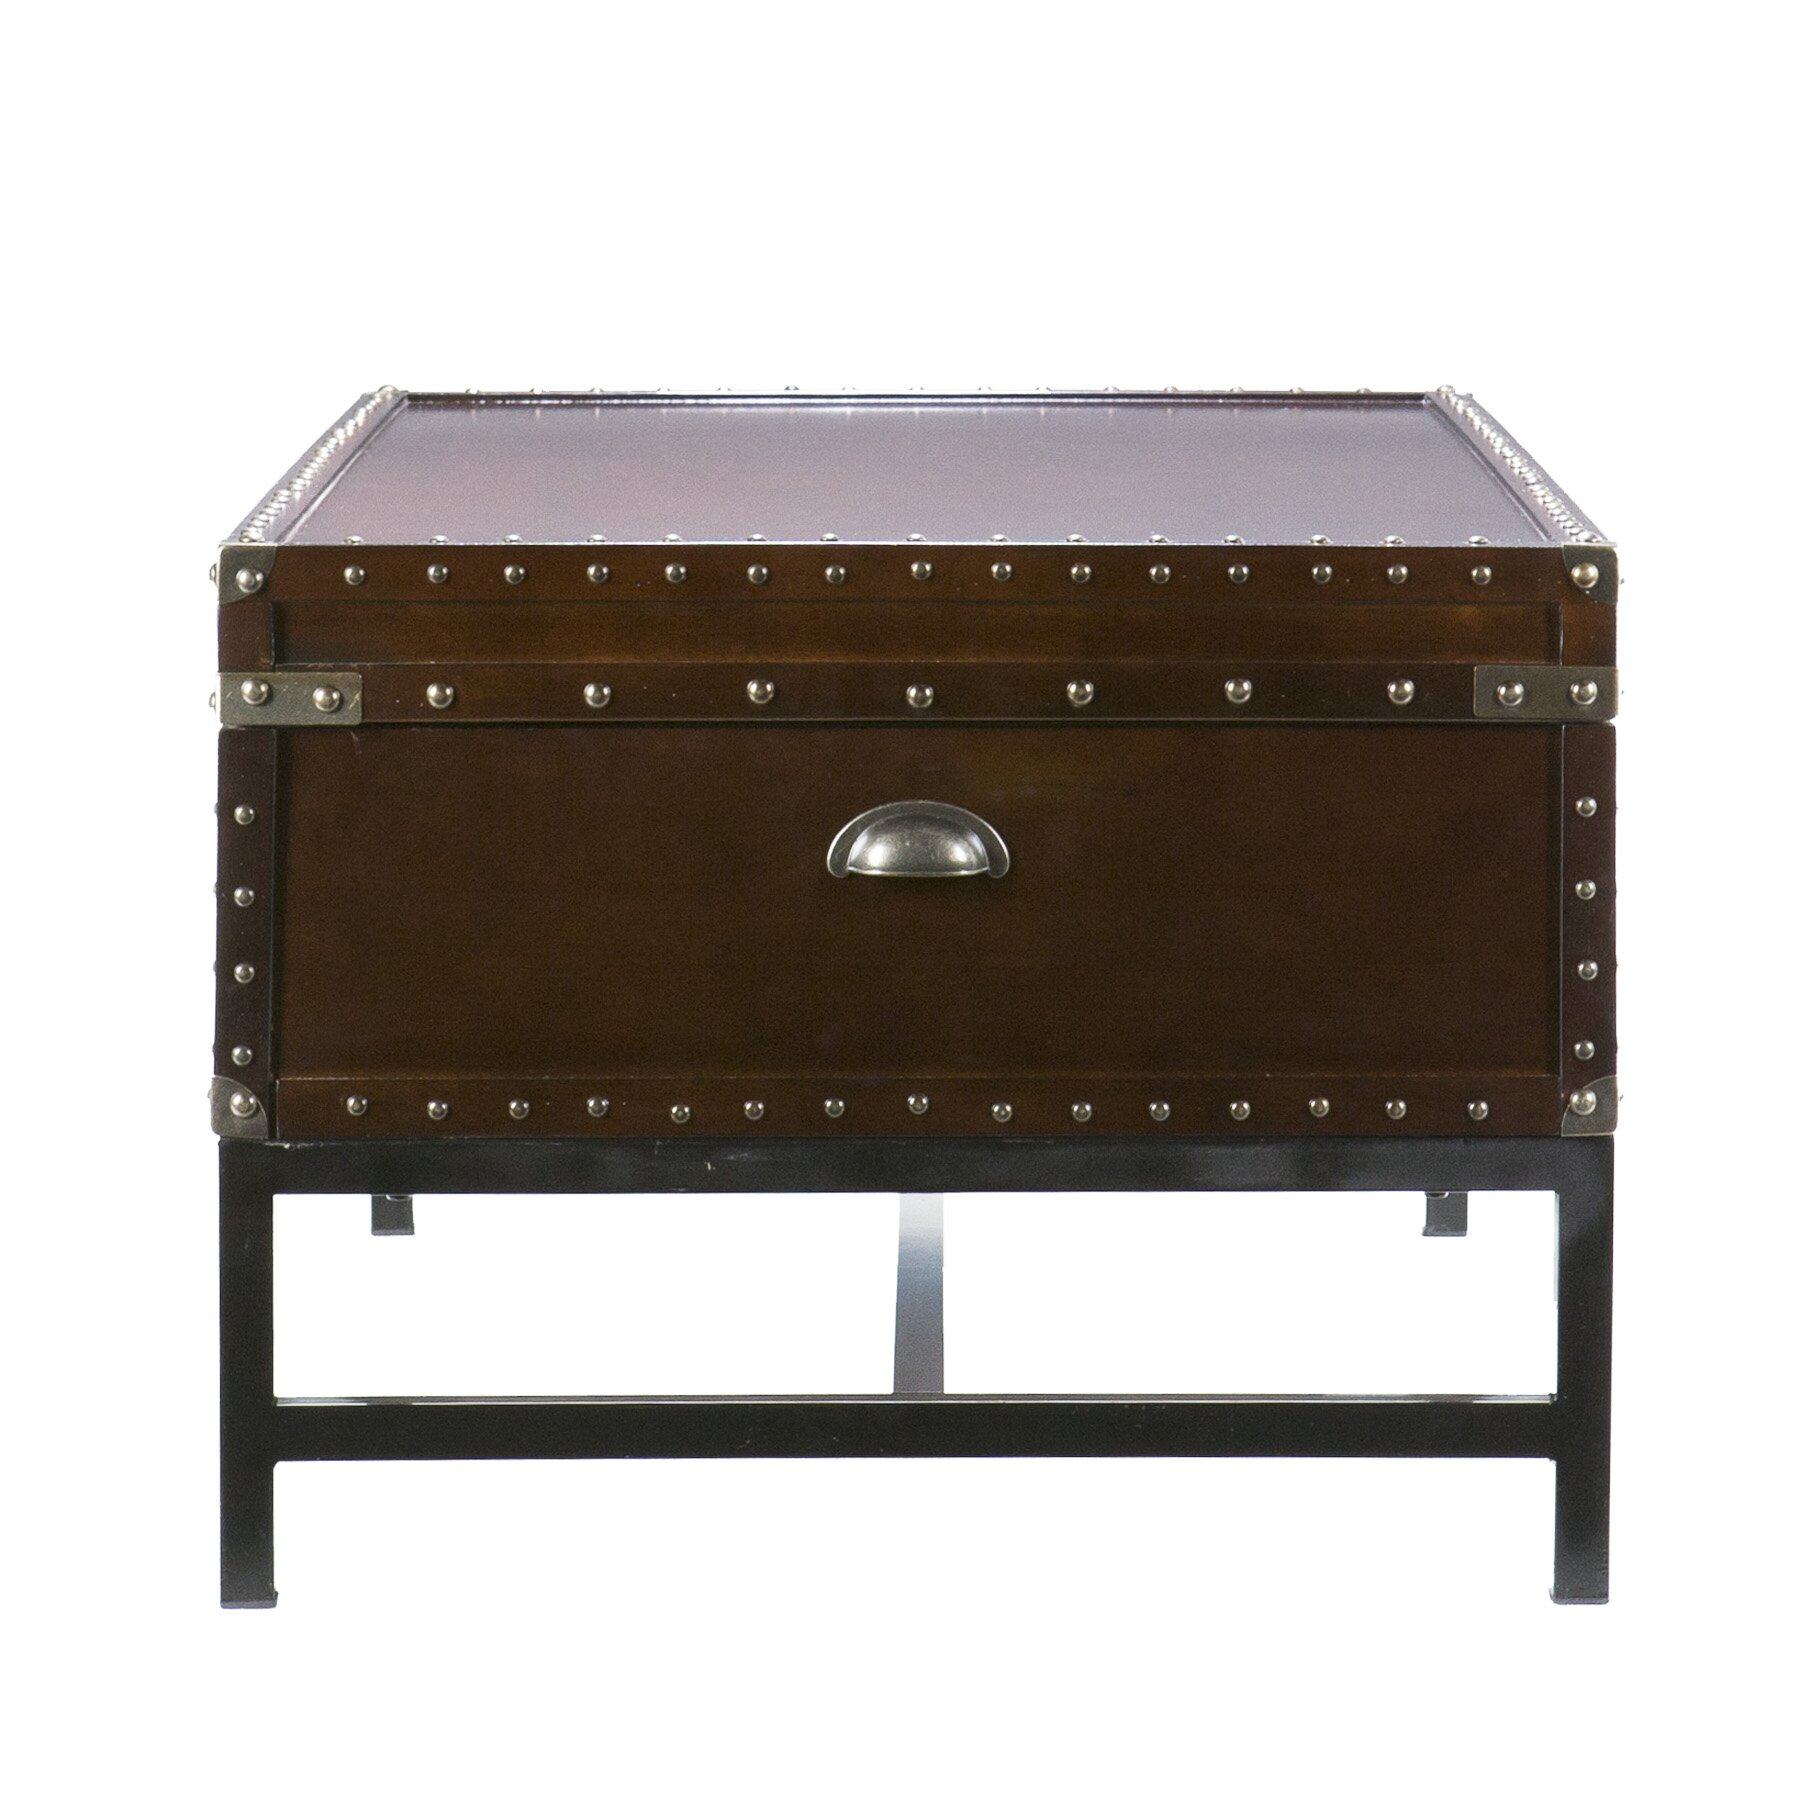 Next Trunk Coffee Table: Trent Austin Design Aztec Trunk Coffee Table & Reviews